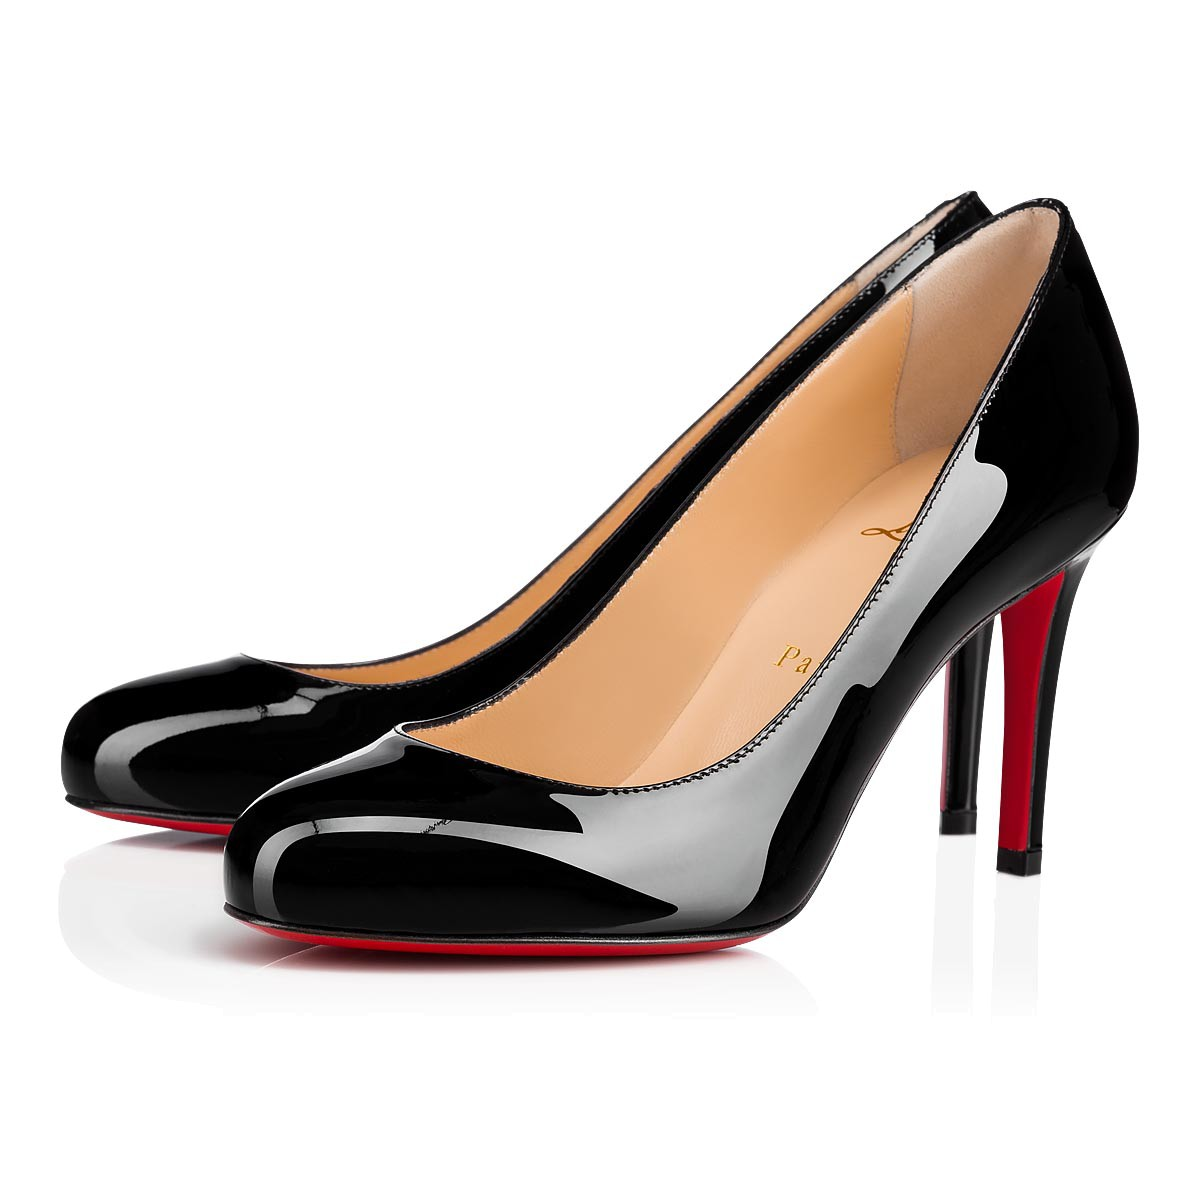 online store d2e94 61def Fifille 85 Black Patent Leather - Women Shoes - Christian Louboutin